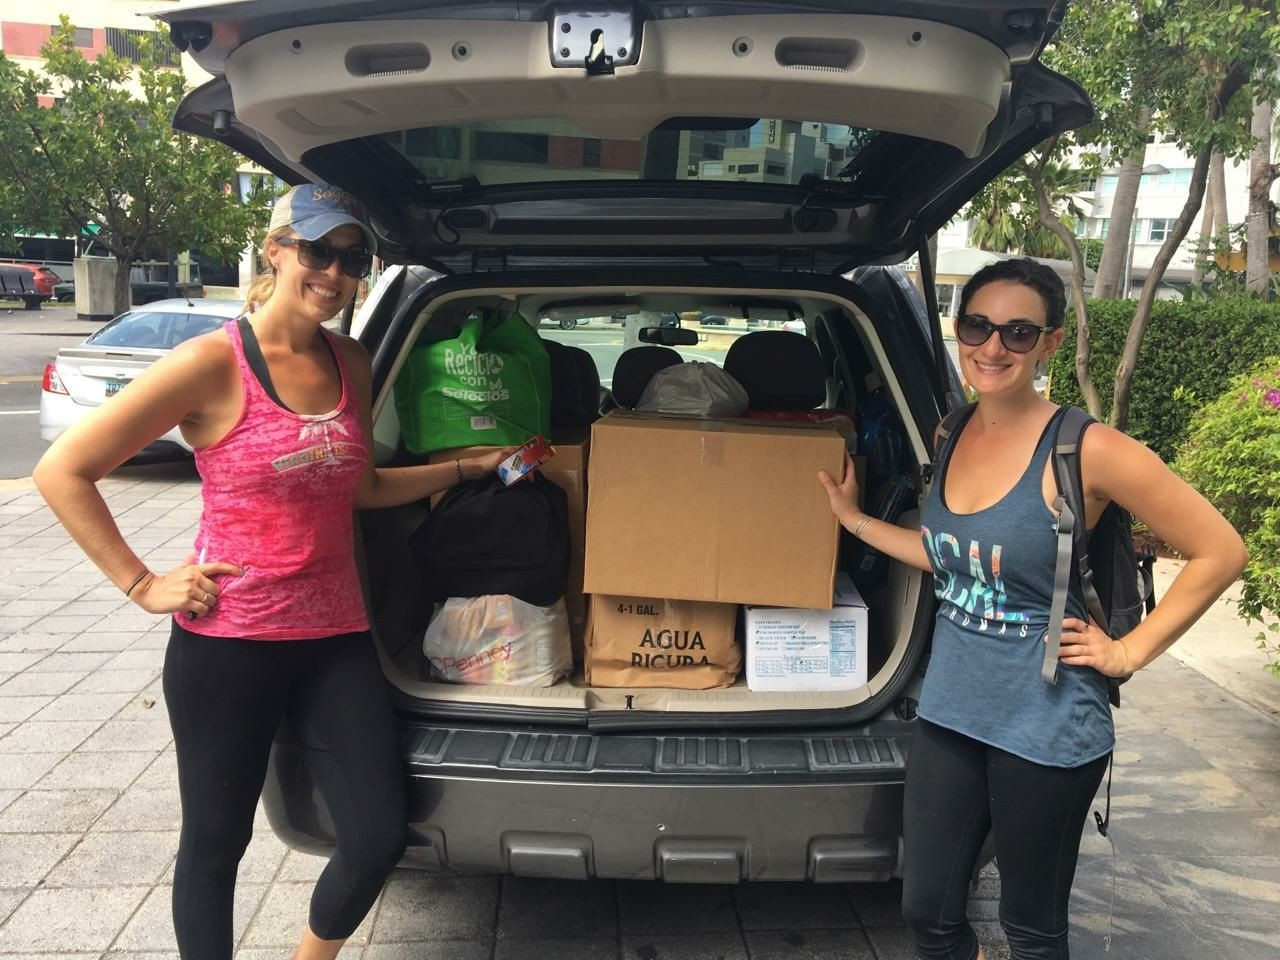 Rabinowitz, right, and her friend Chrystie Payne have been mobilizing to get medical supplies to St. Thomas from Puerto Rico this week, in the wake of Hurricane Irma.